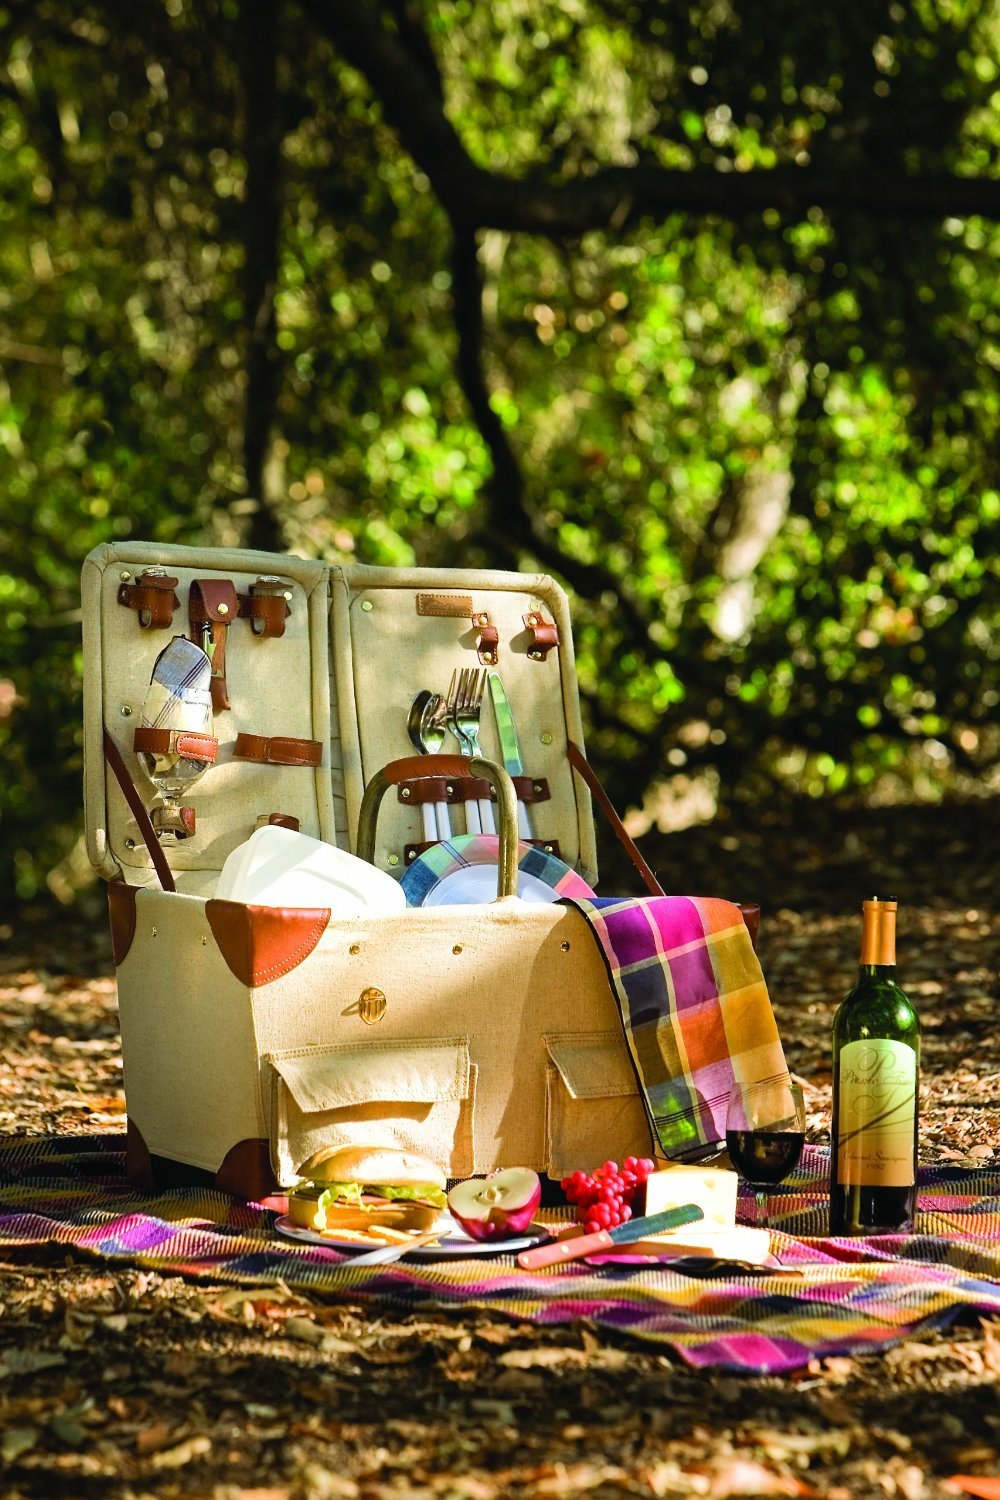 Picnic Time Pioneer Original Design Picnic Basket with Deluxe Service for Two, Tan/Navy